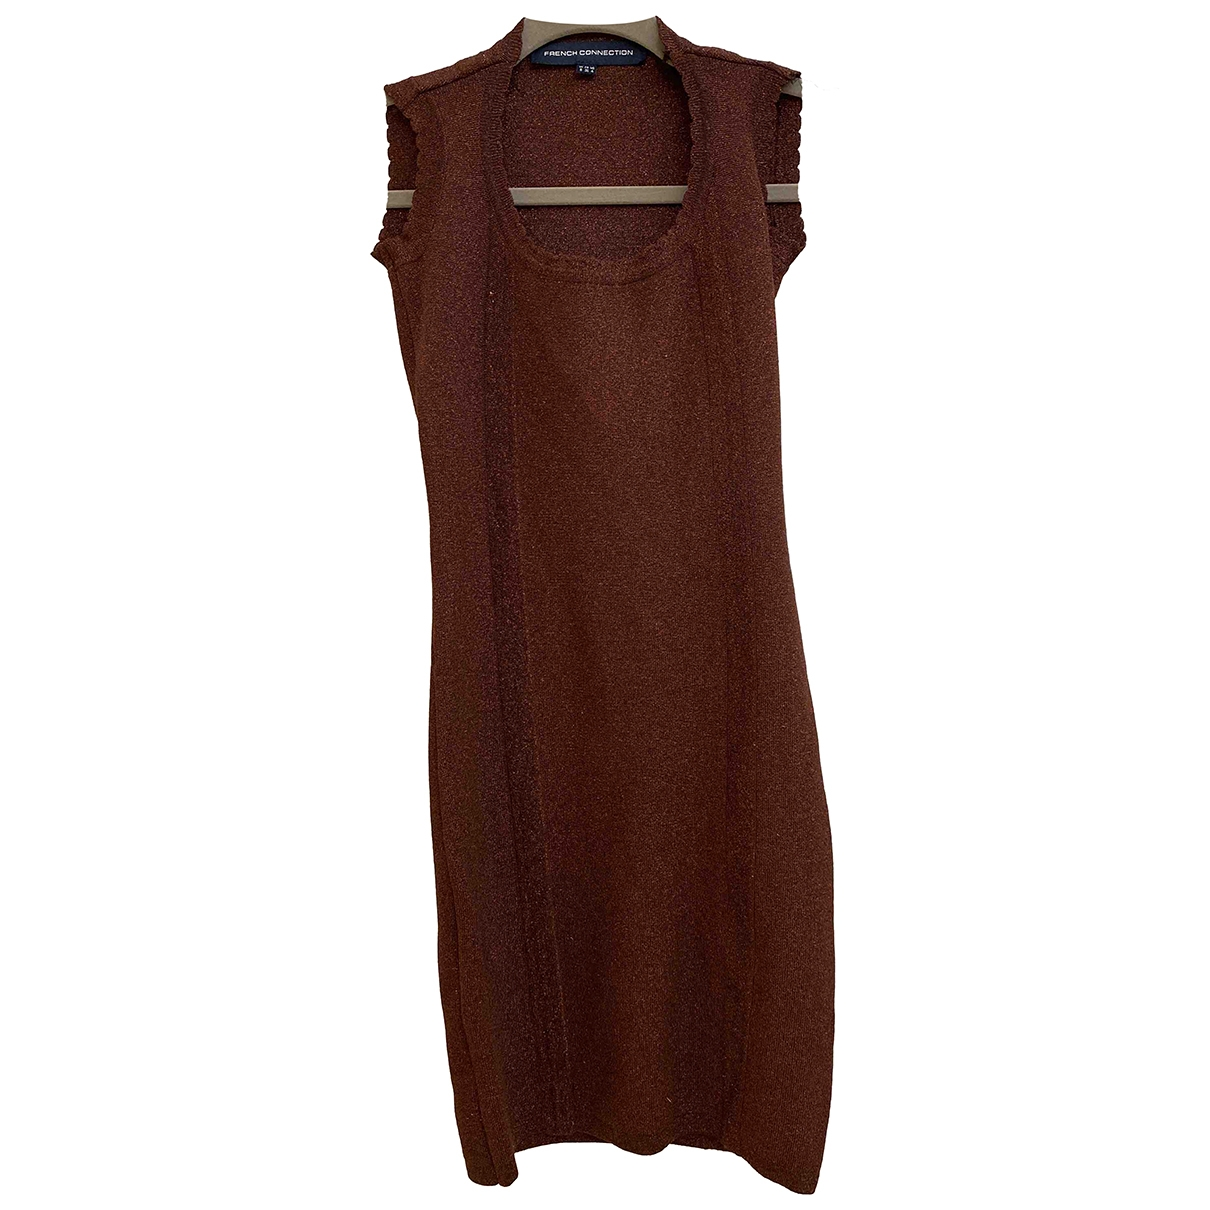 French Connection \N Burgundy dress for Women 8 UK